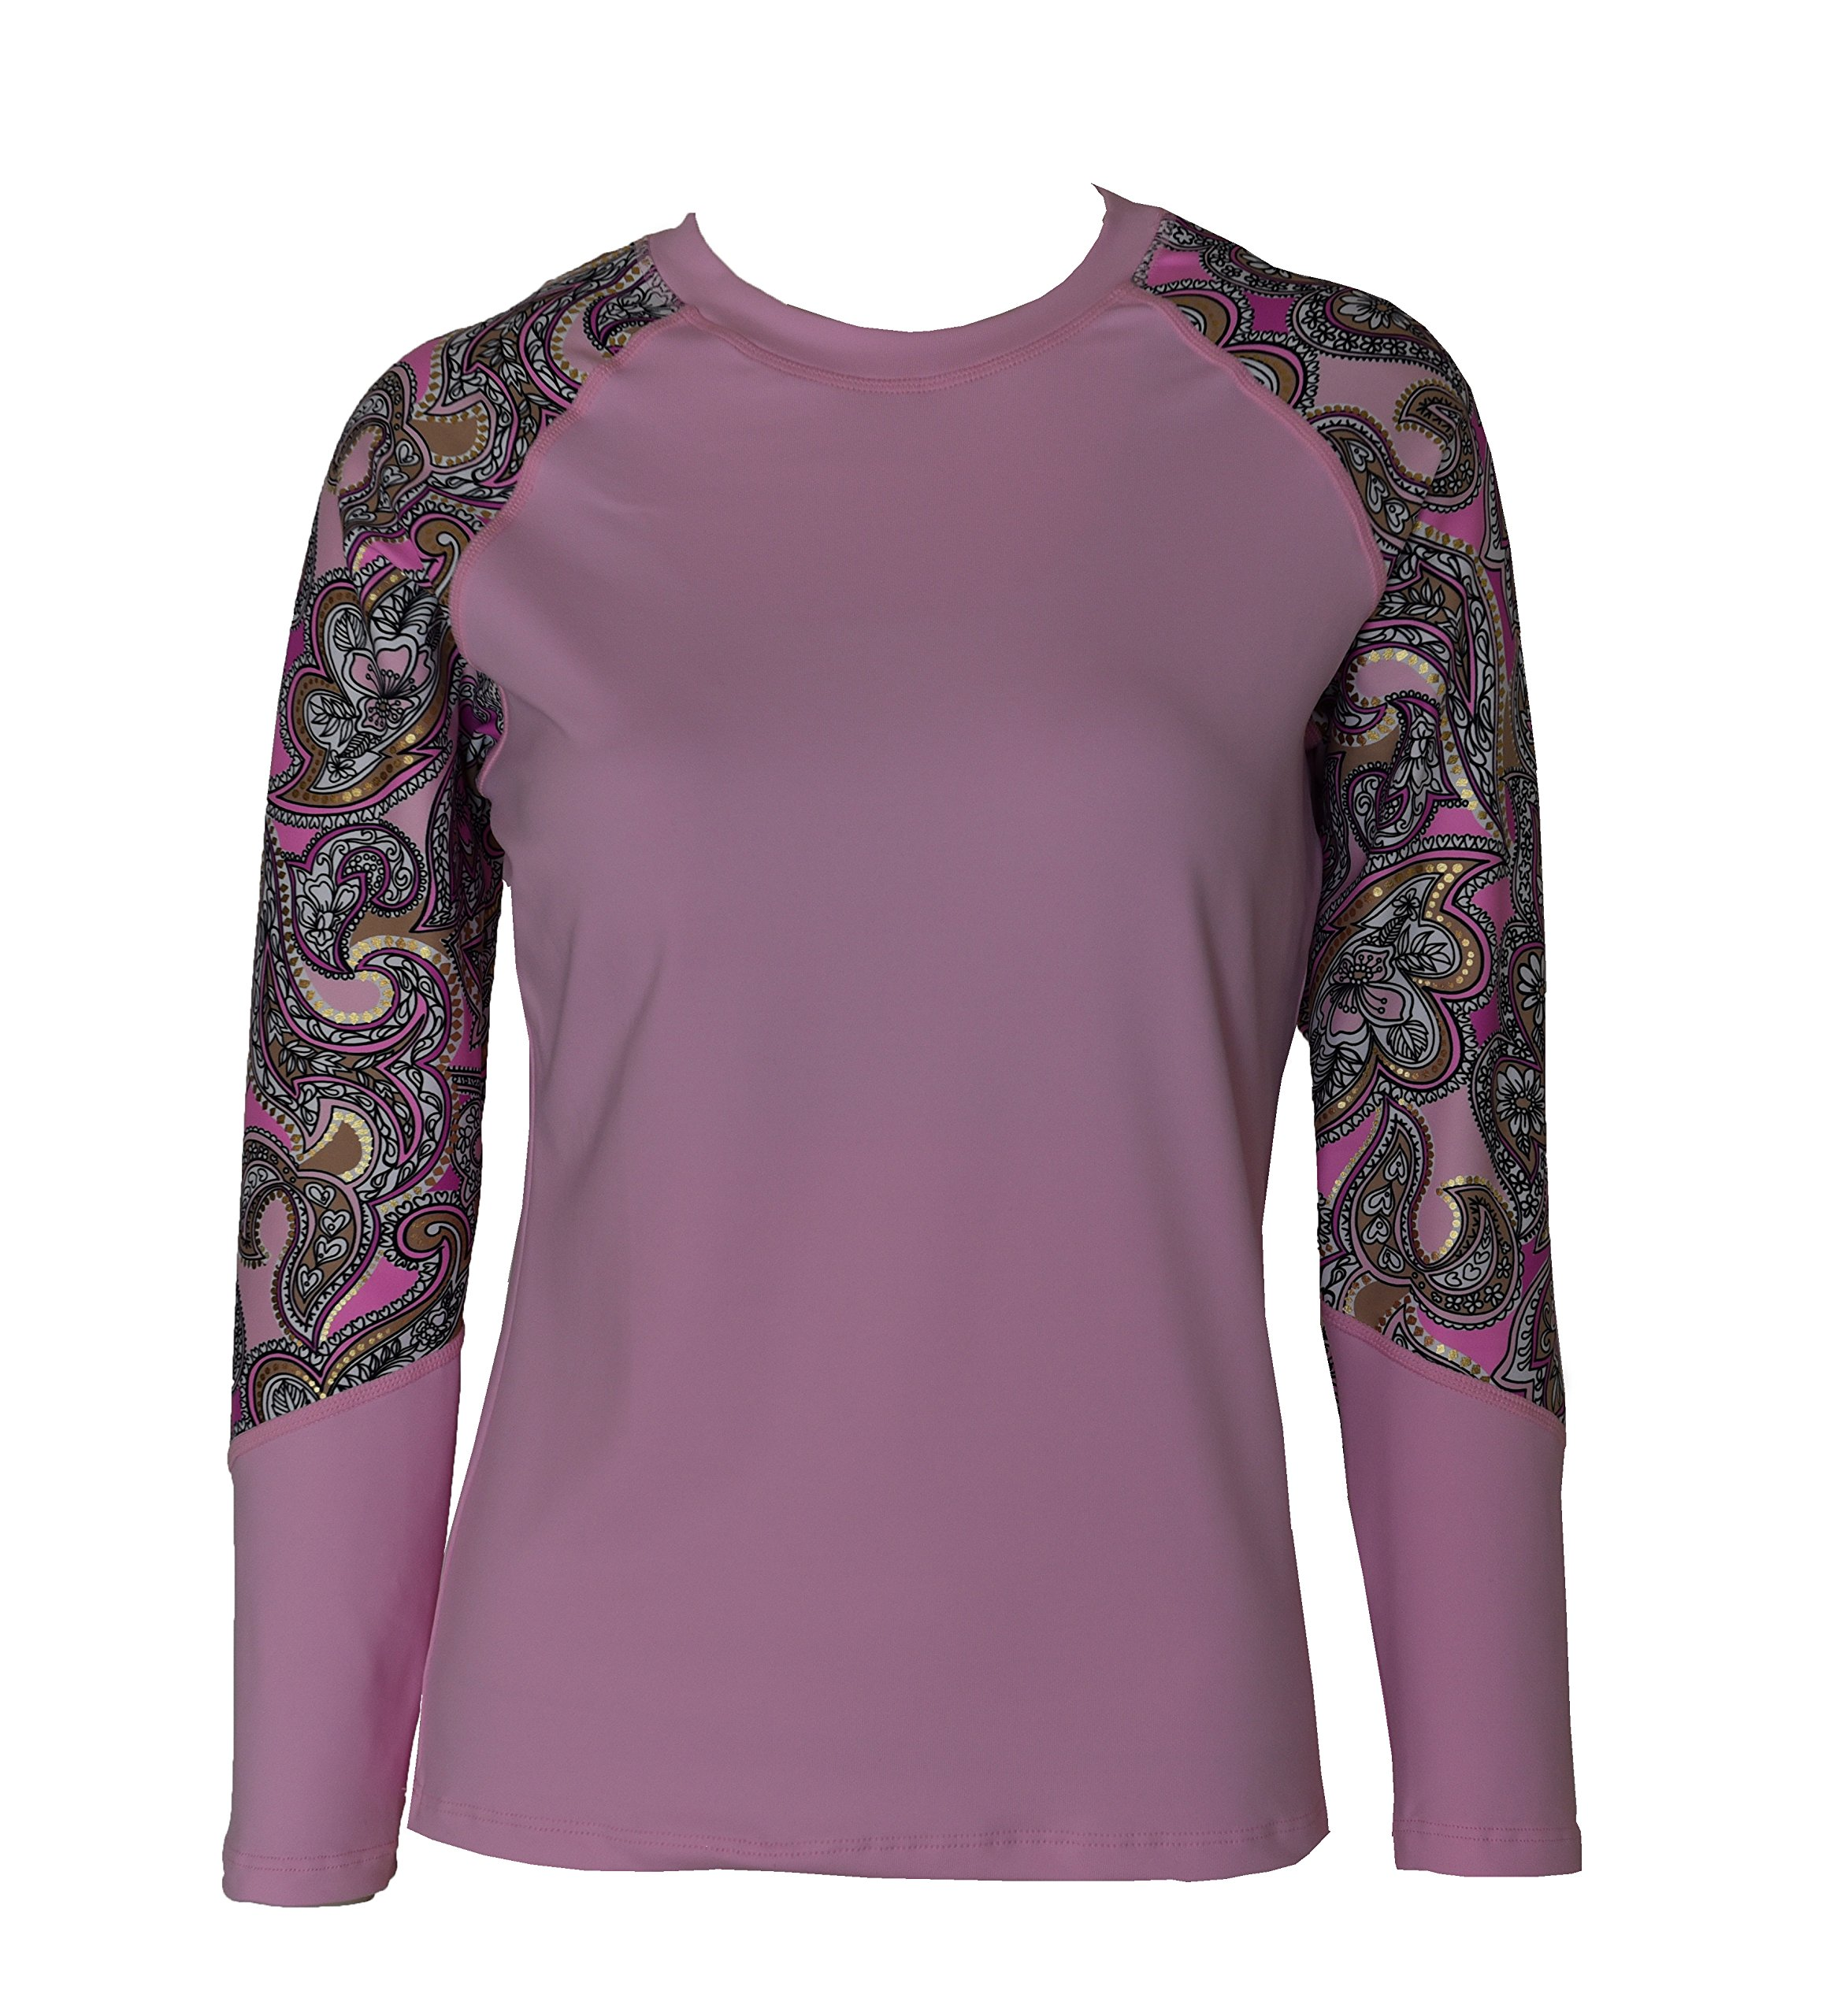 Private Island Hawaii Women UV Wetsuits Long Raglan Sleeve Rash Guard Top Pink with Pink Gold Spot XX-Large by Private Island Hawaii (Image #1)